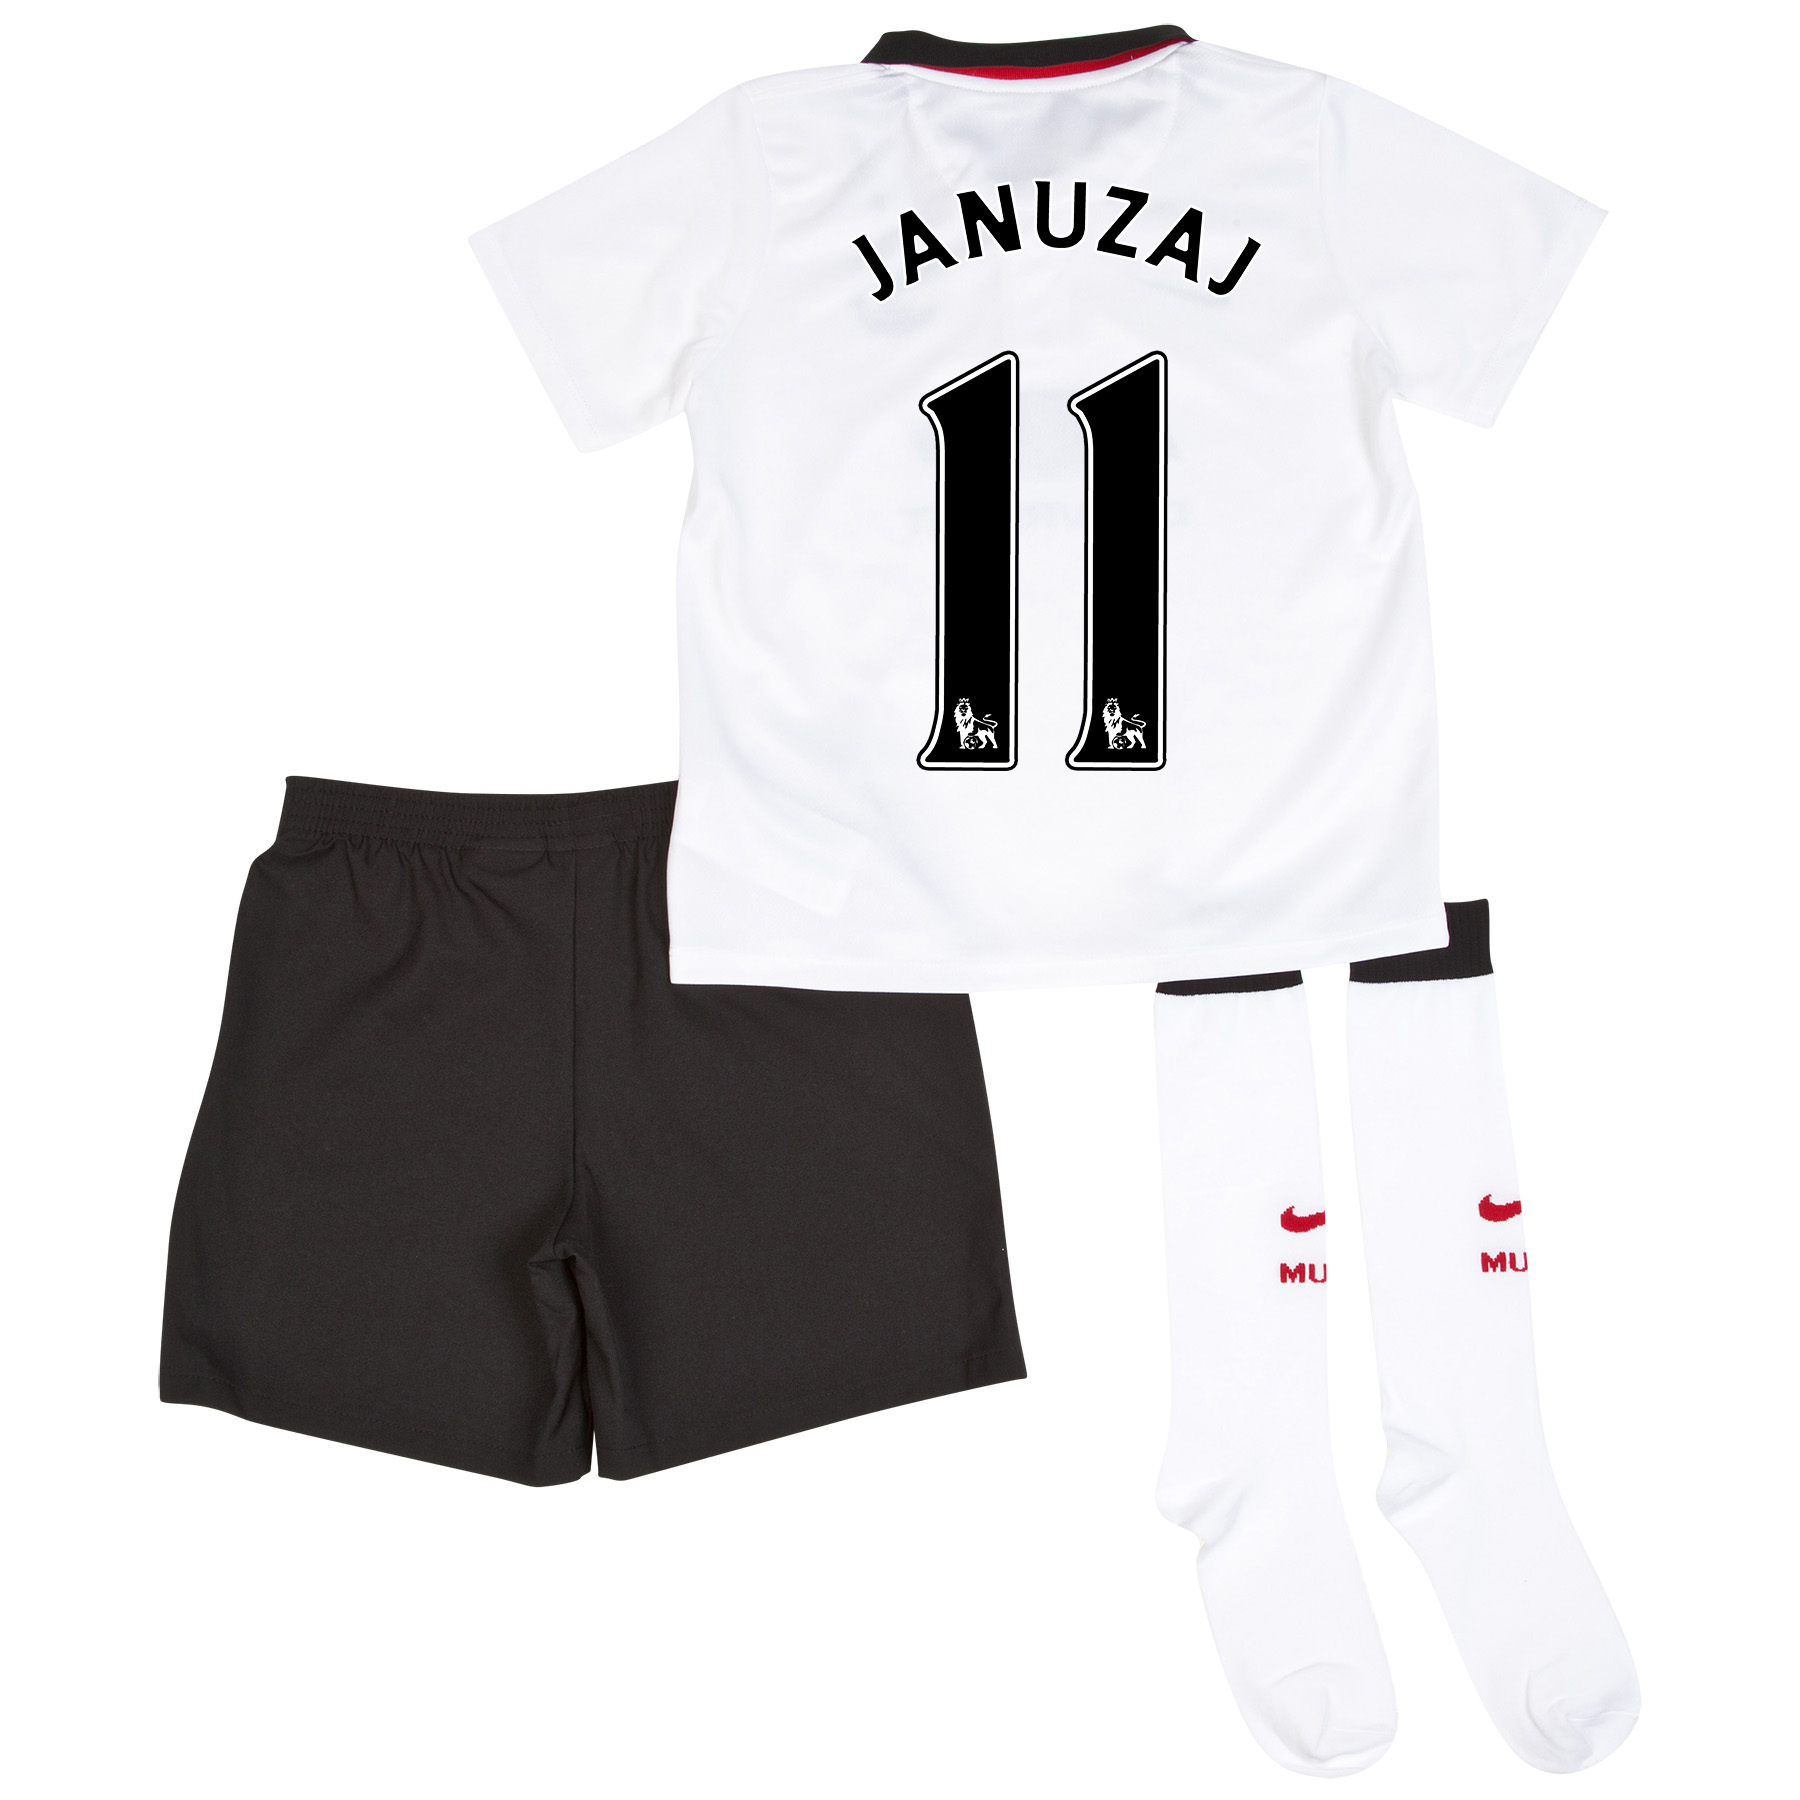 Manchester United Away Kit 2014/15 - Little Boys with Januzaj 11 printing